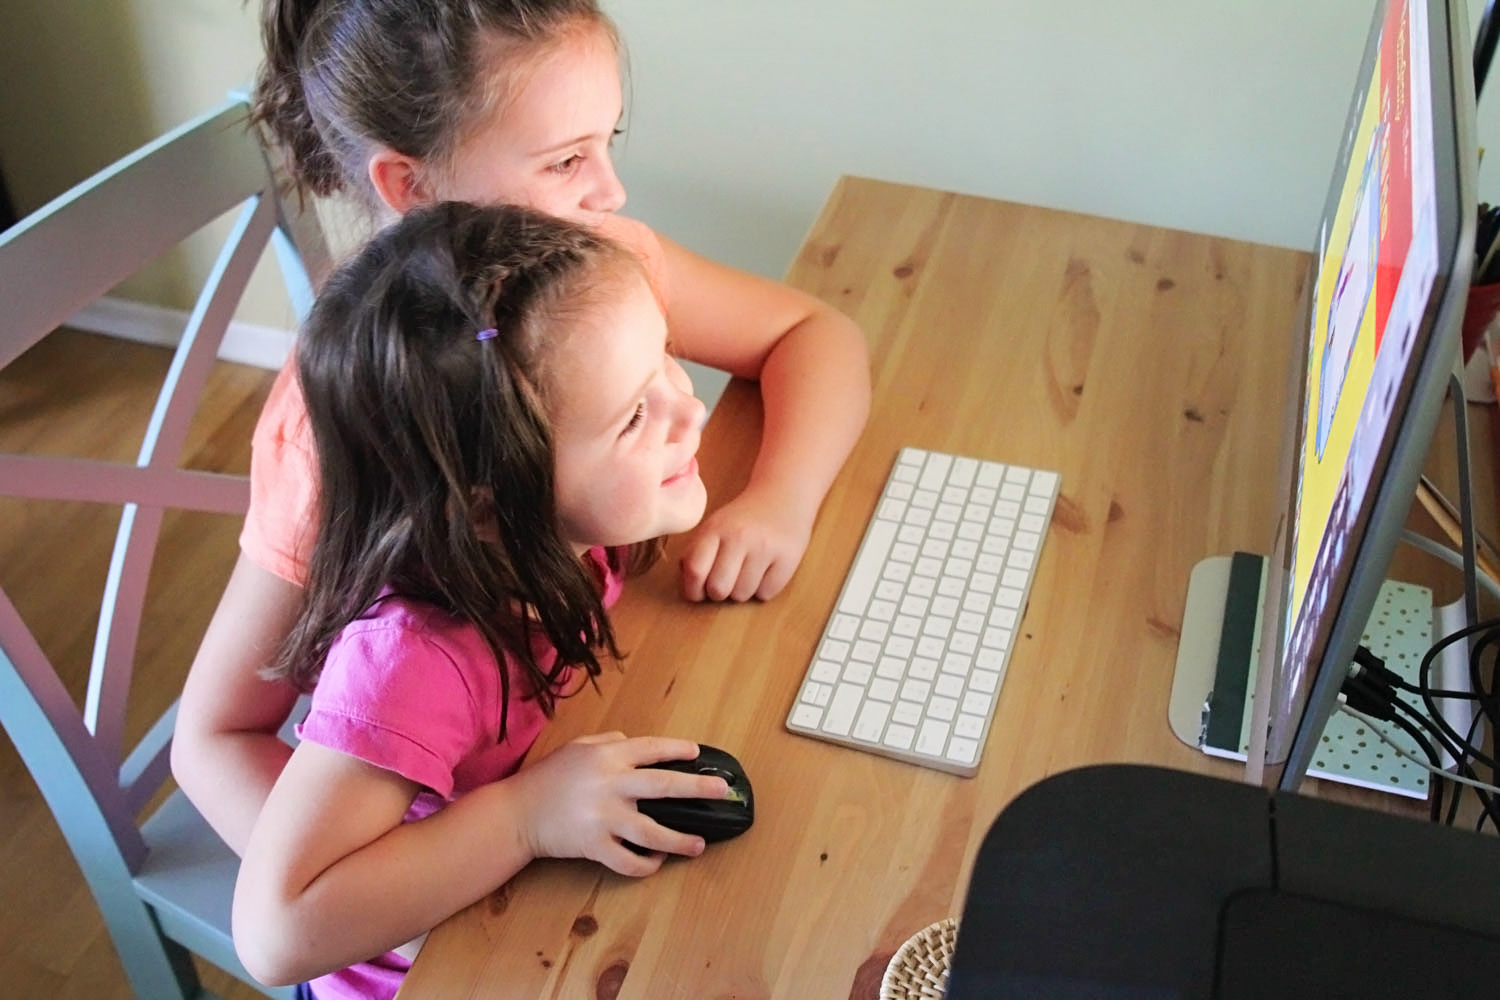 Kids and the Internet - 5 Simple Ideas for Technology Use at Home